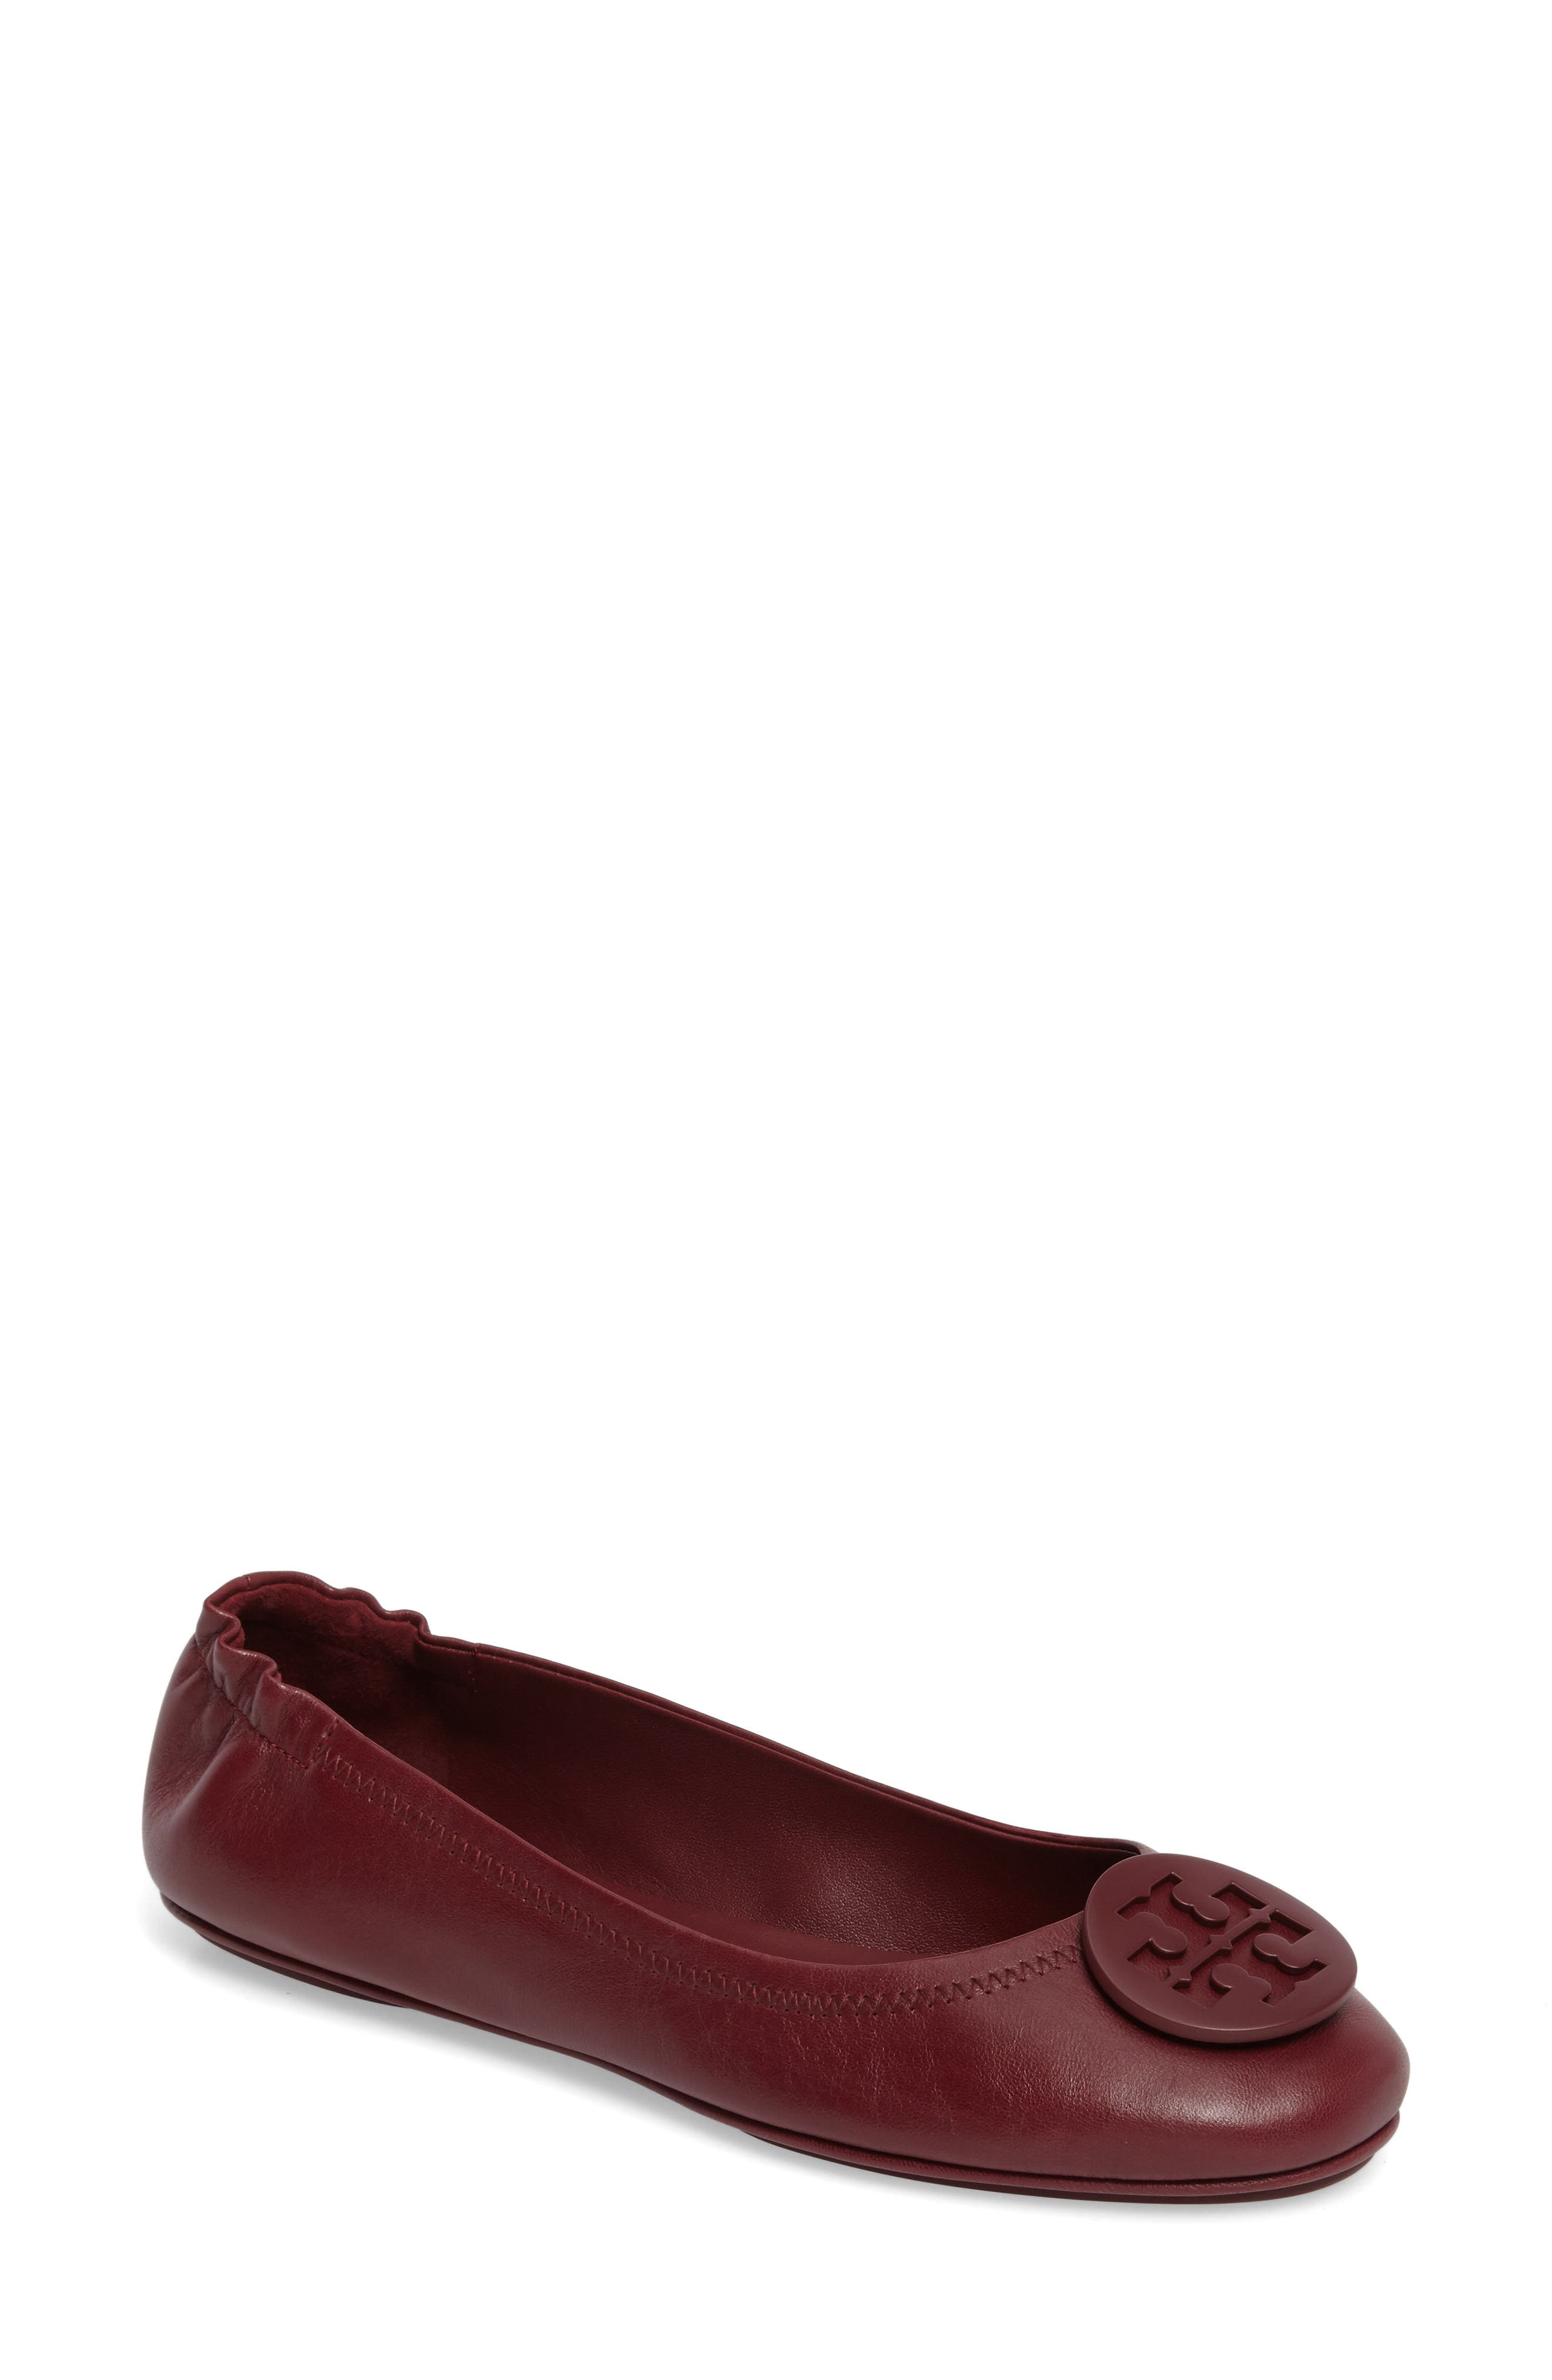 Tory Burch 'Minnie' Travel Ballet Flat ...